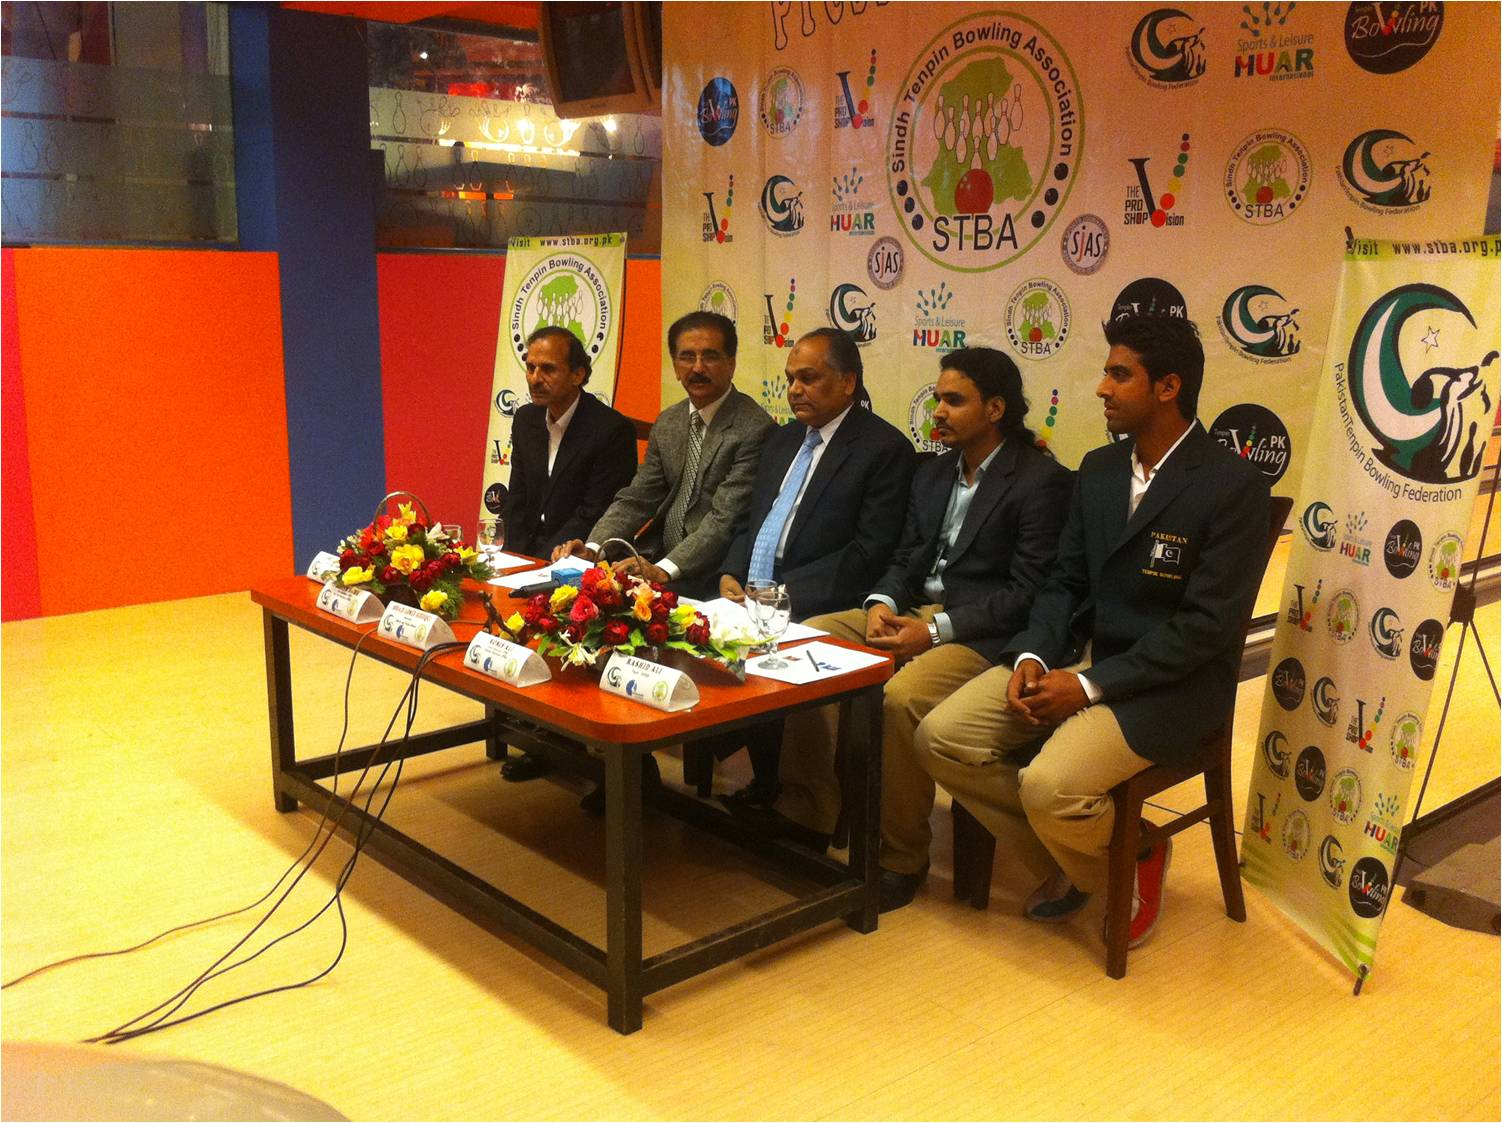 Team Pakistan First time appear in Euro Challenge 2012 Bowling Championship